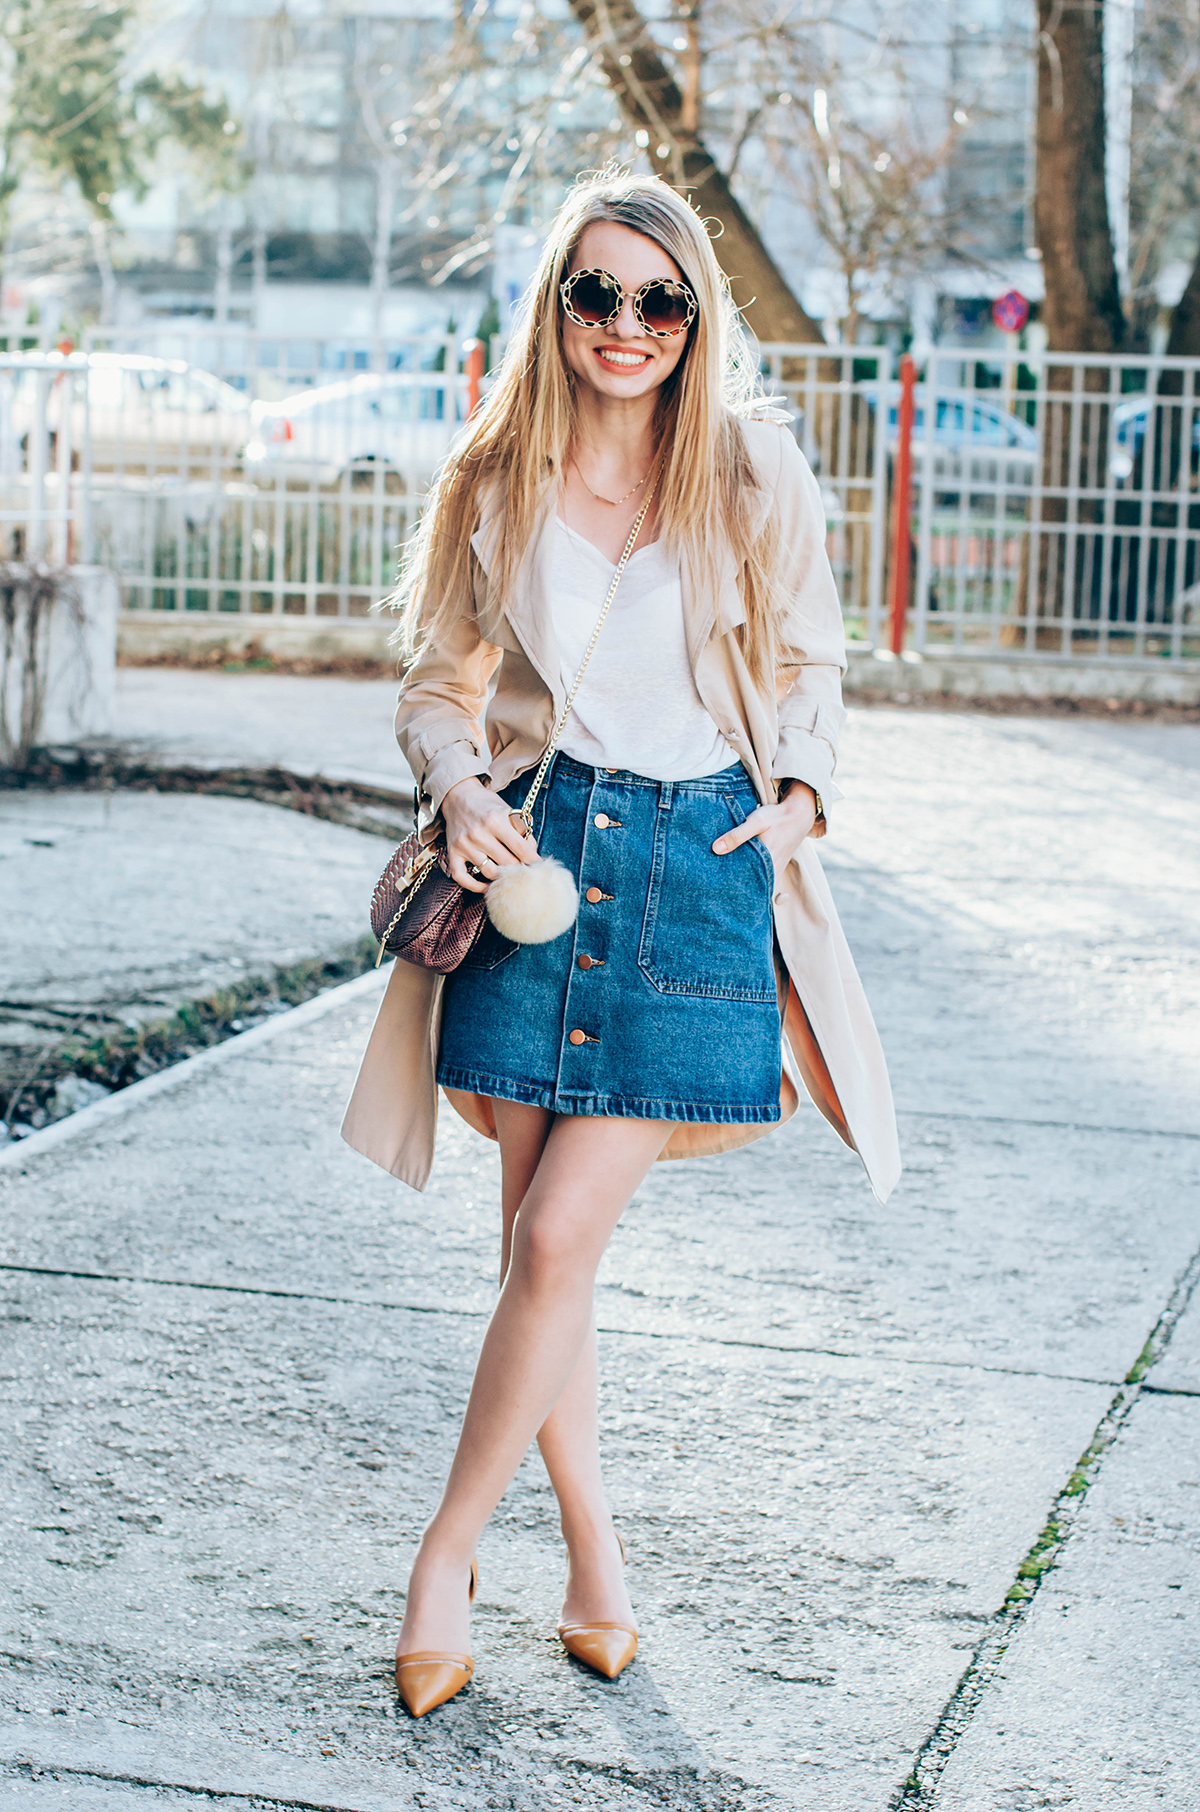 shein-buttoned-denim-skirt-trench-coat-outfit-snake-chloe-bag-fur-pom-pom-outfit (7)